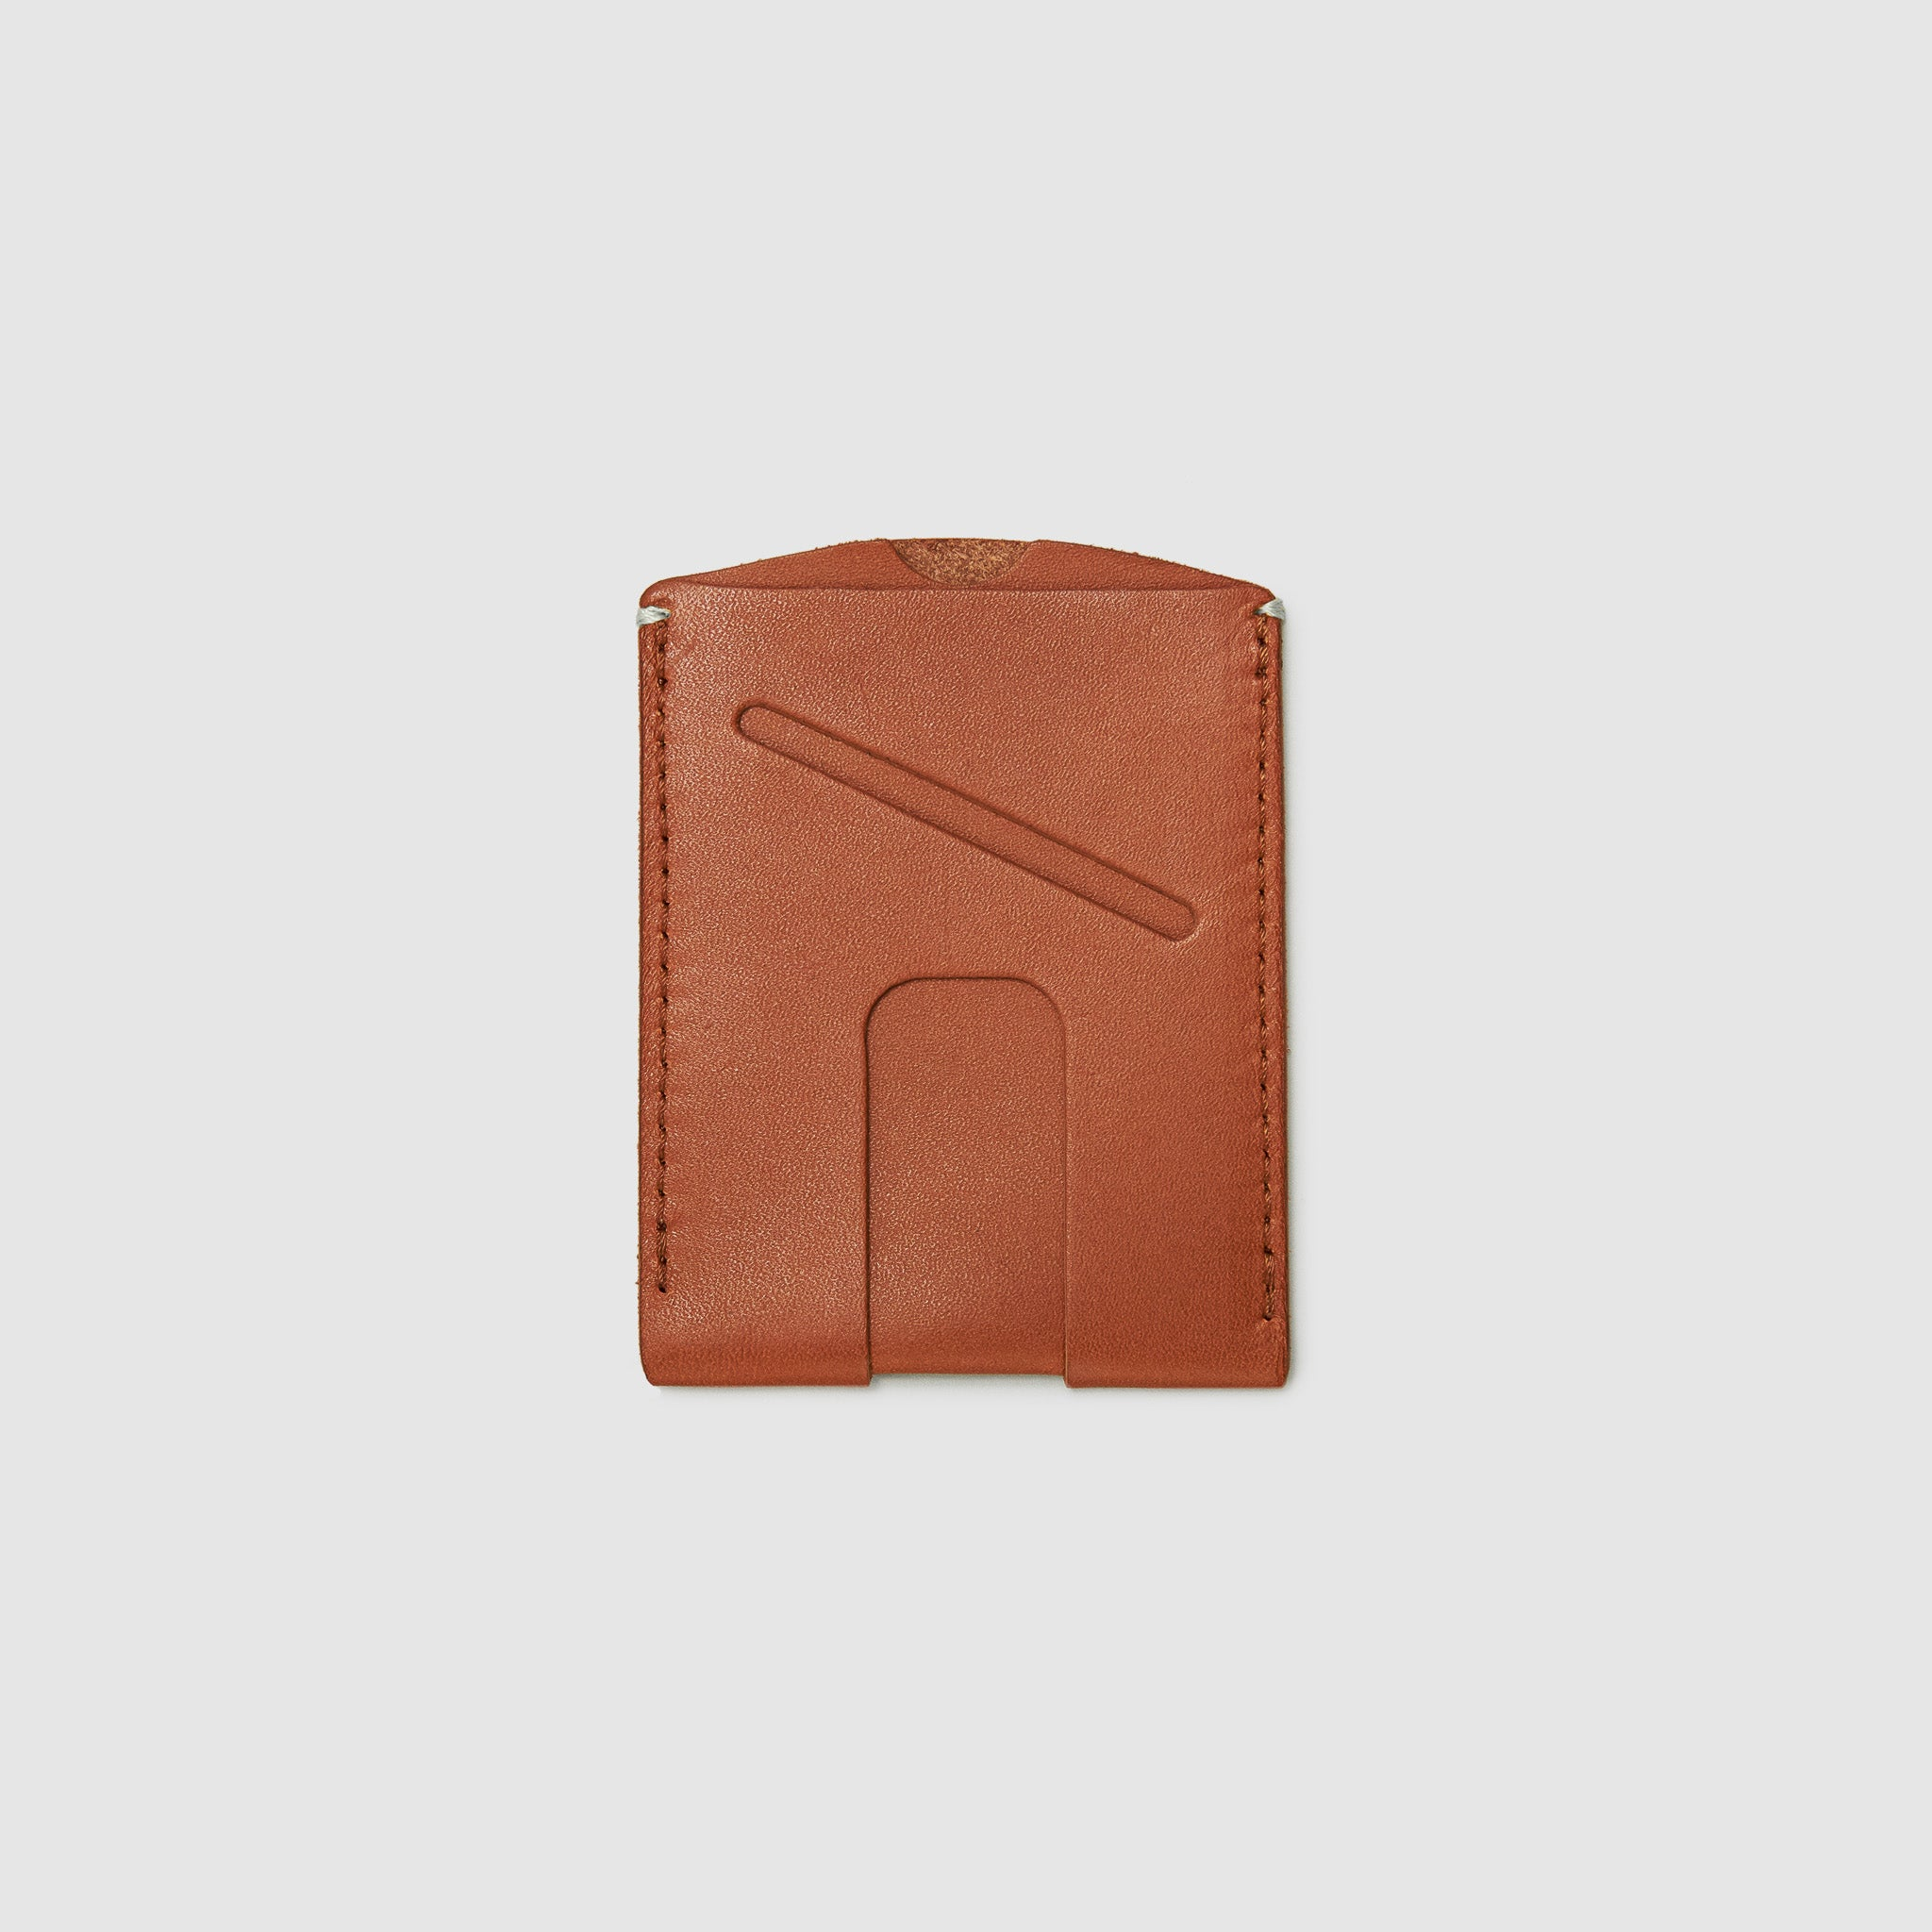 card wallet with cash slot minimal ANSON CALDER French Calfskin _blackPASSPORT WALLET WALLET ANSON CALDER french calfskin leather _cognac